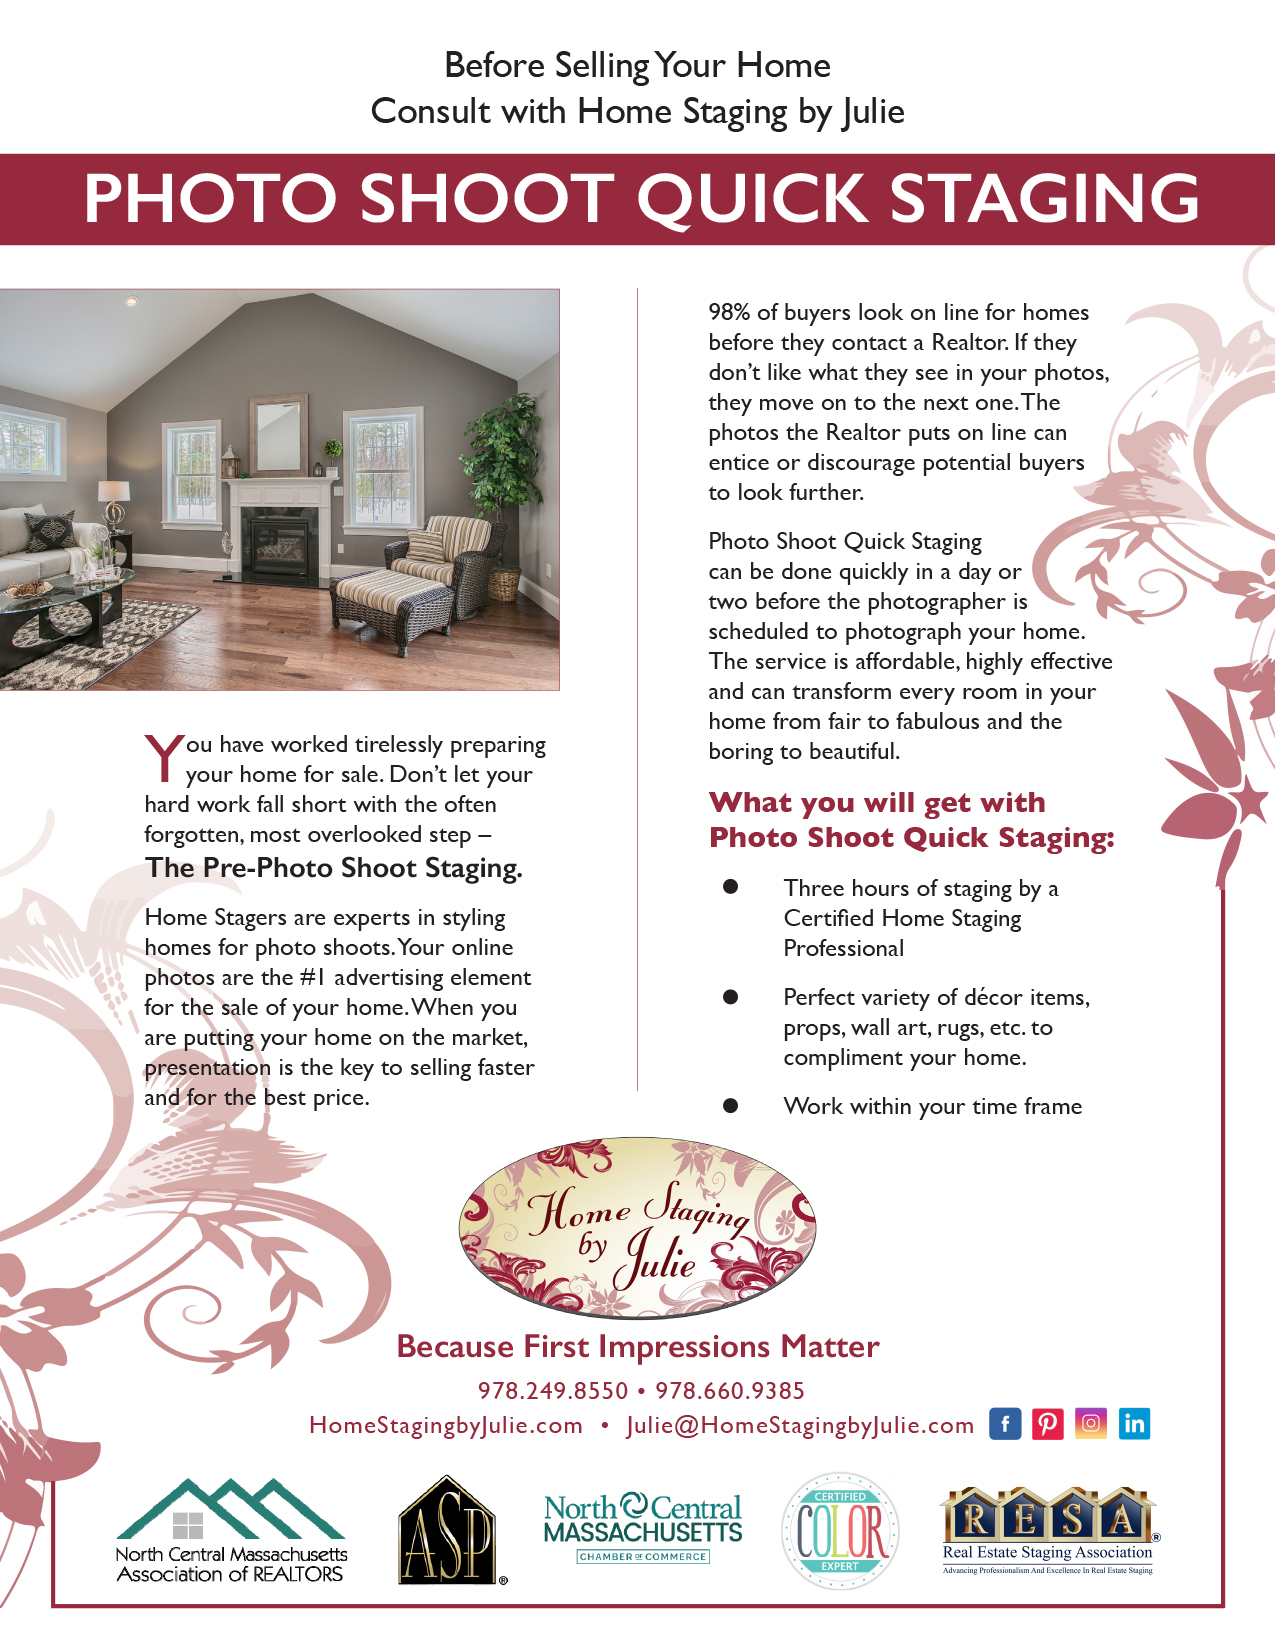 Consultation flyer designed for Home Staging By Julie by Sitka Creations.